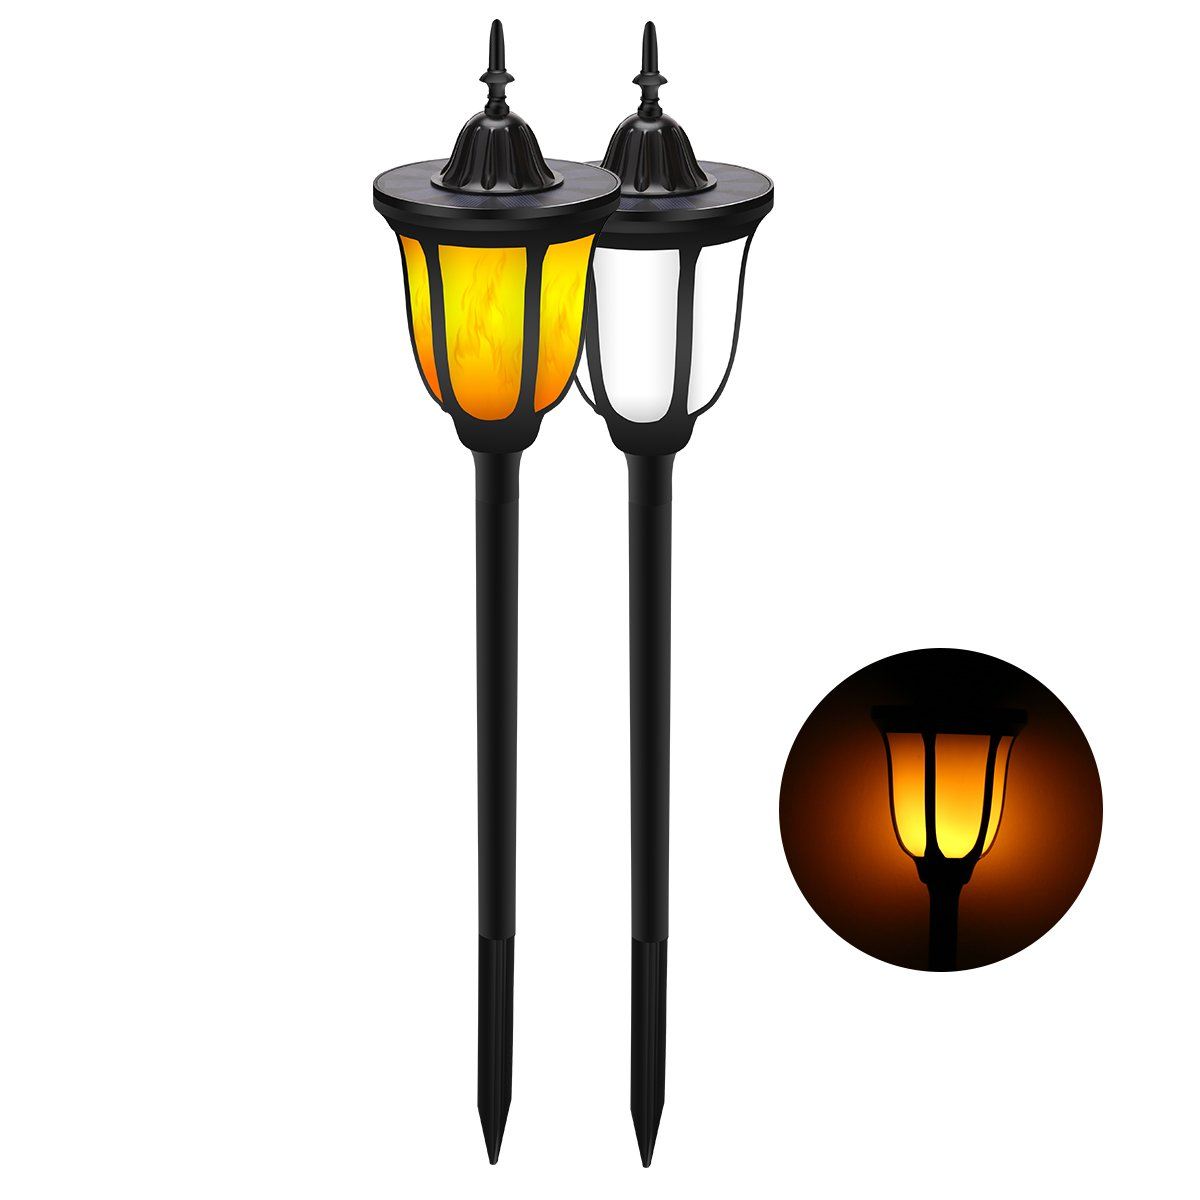 ALOVECO Solar Torch Lights, Waterproof Flickering Flames Torches Lights Outdoor Solar Spotlights Landscape Decoration Lighting Dusk to Dawn Auto On/Off Security Torch Light for Patio Driveway by ALOVECO